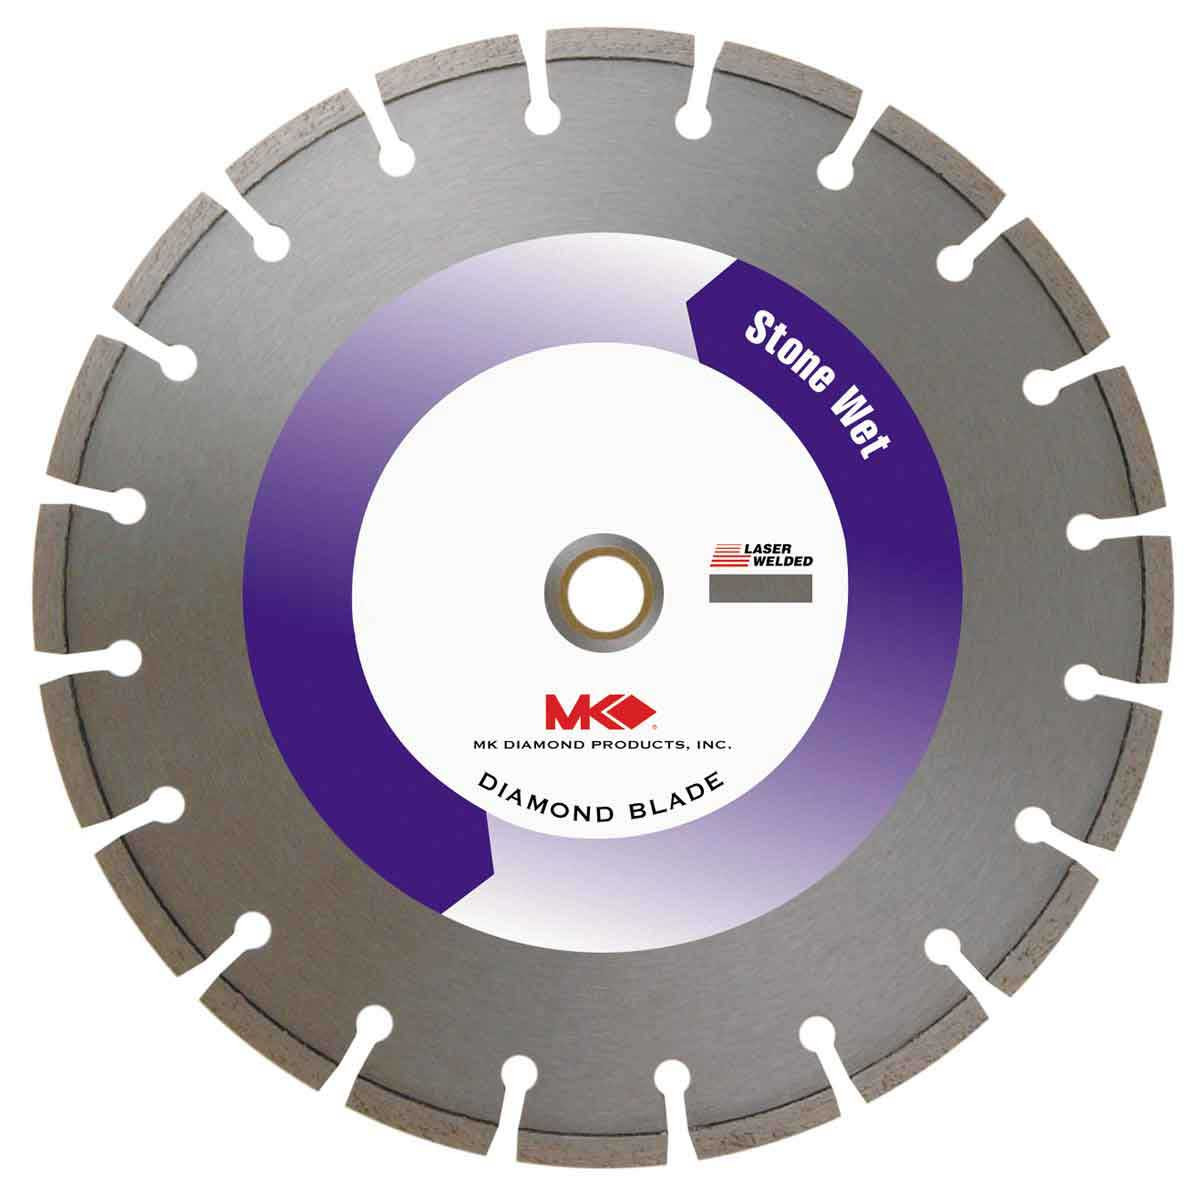 mk-62g granite segmented diamond blade